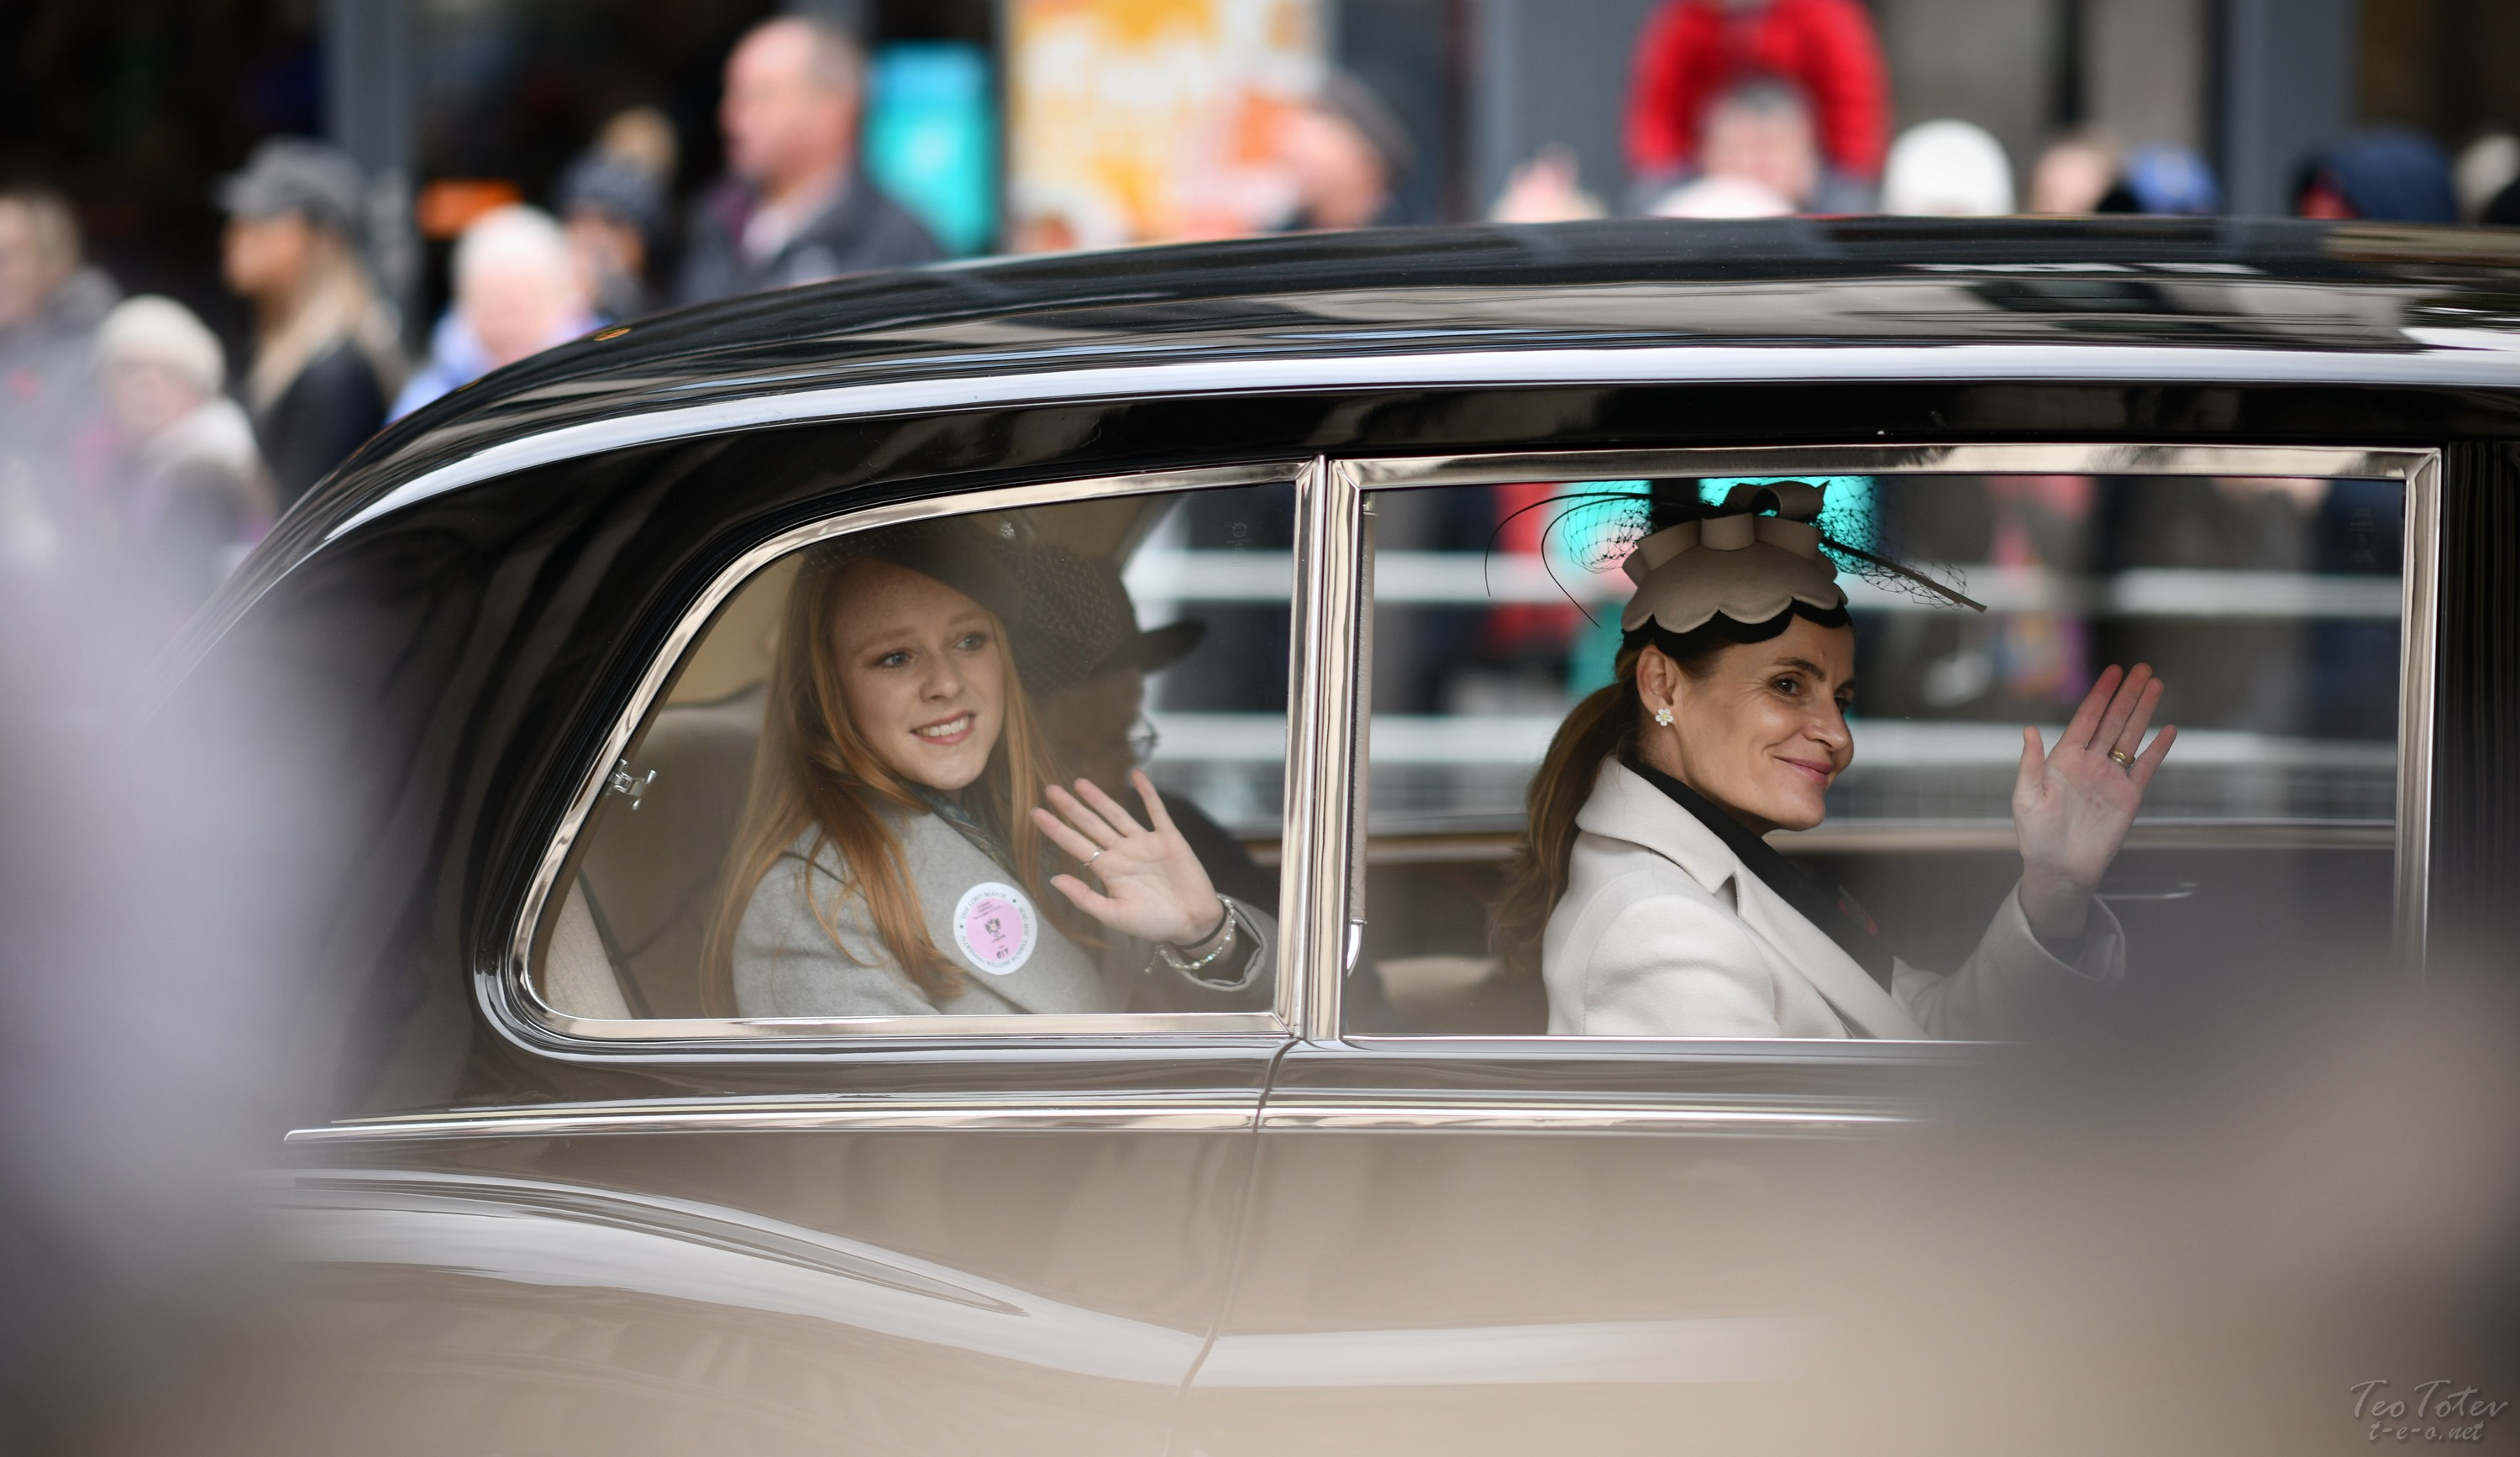 Minor royals in state limo